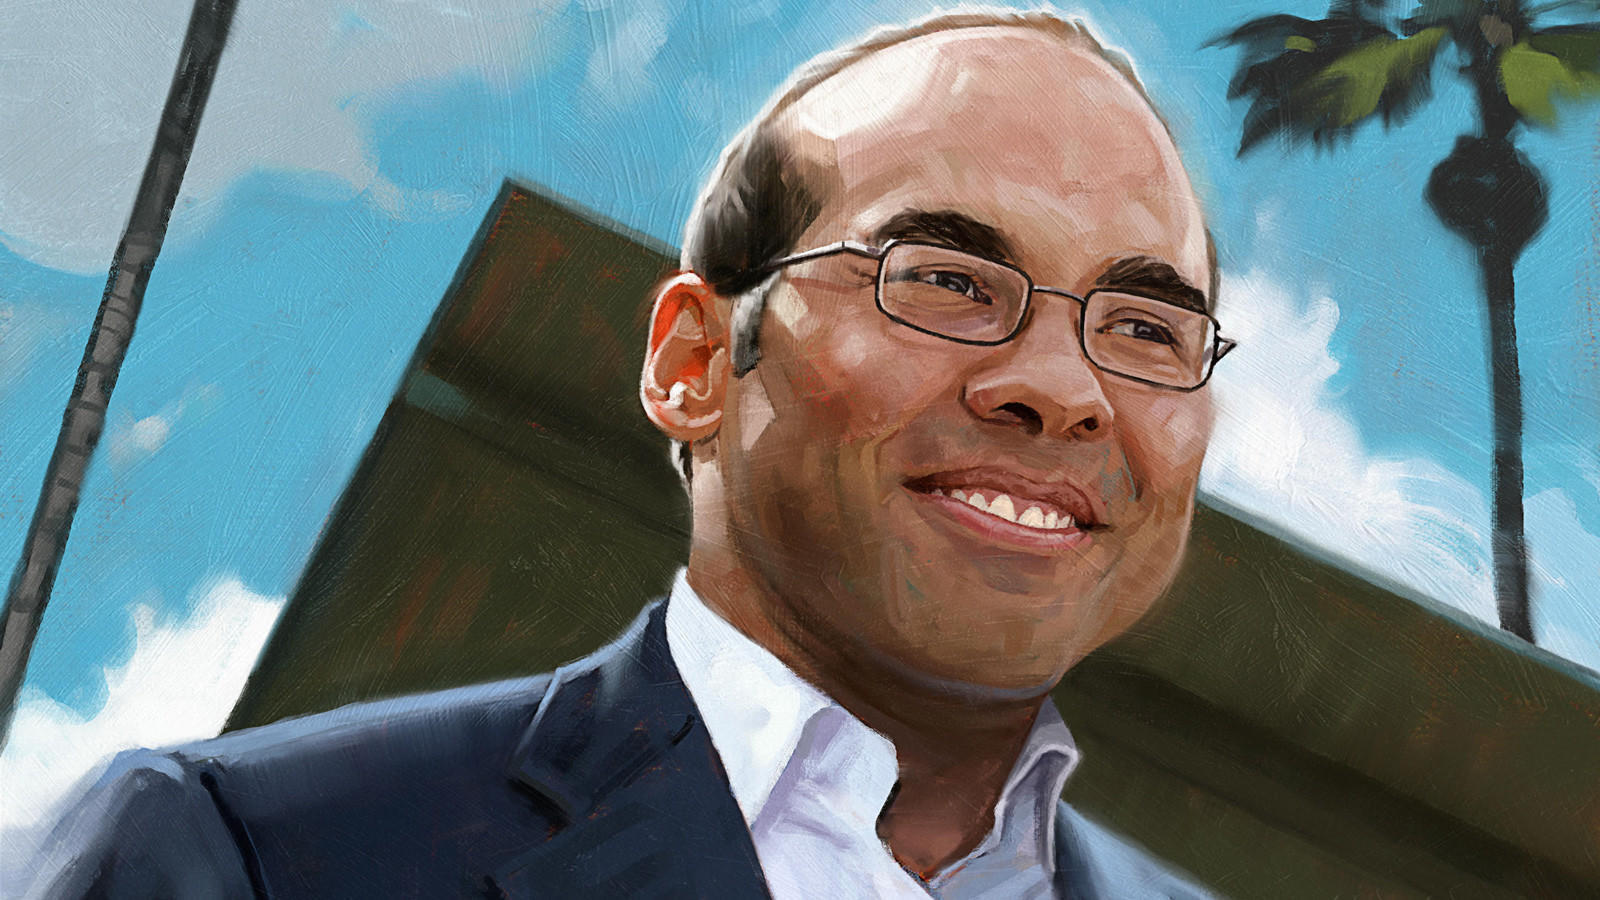 How Dodgers GM Farhan Zaidi became one of the most coveted minds in baseball - LA Times